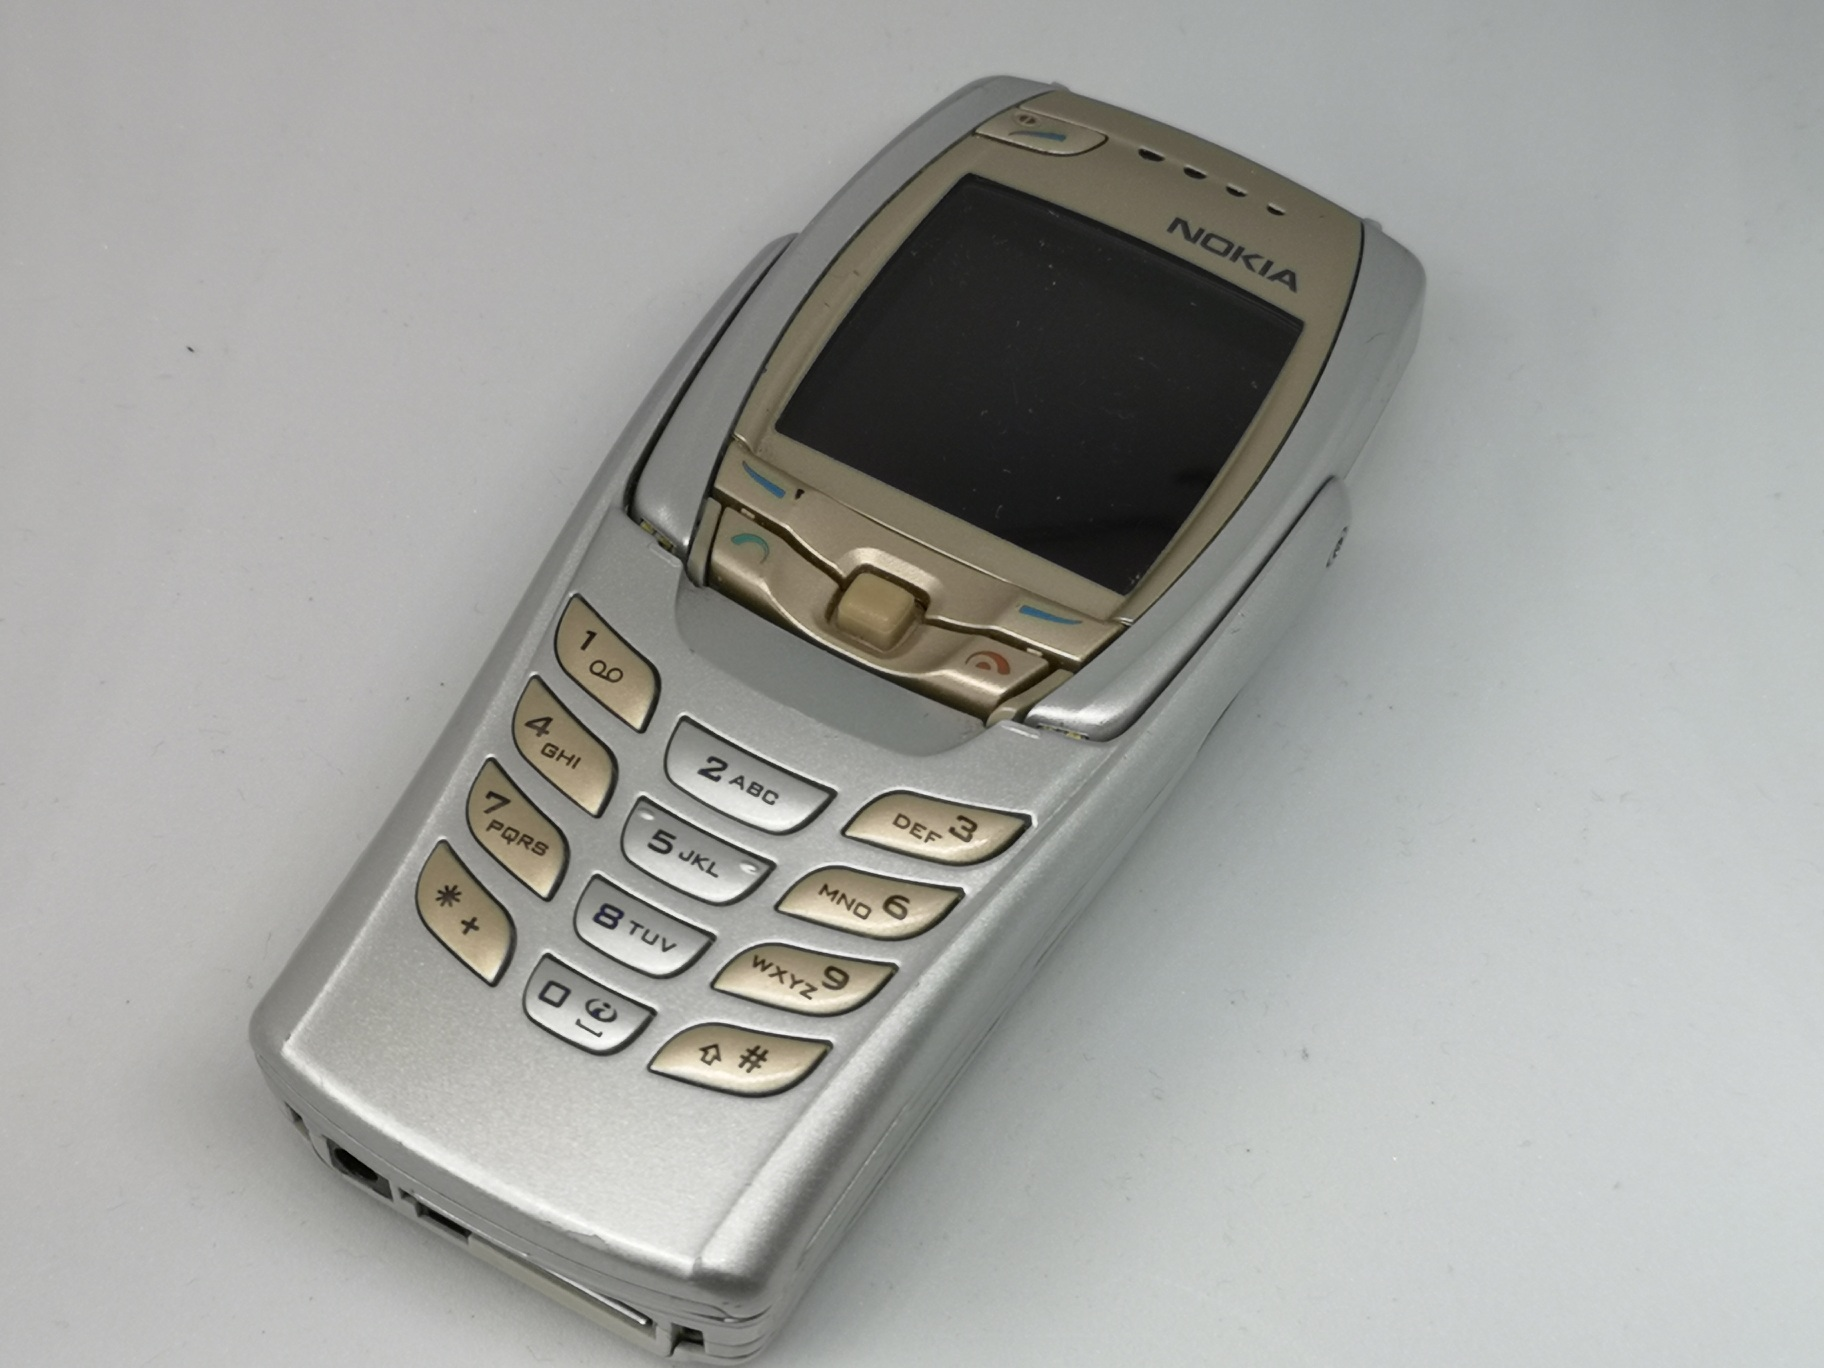 Nokia 6810 Review - Innovative Mobile Phone with Keyboard